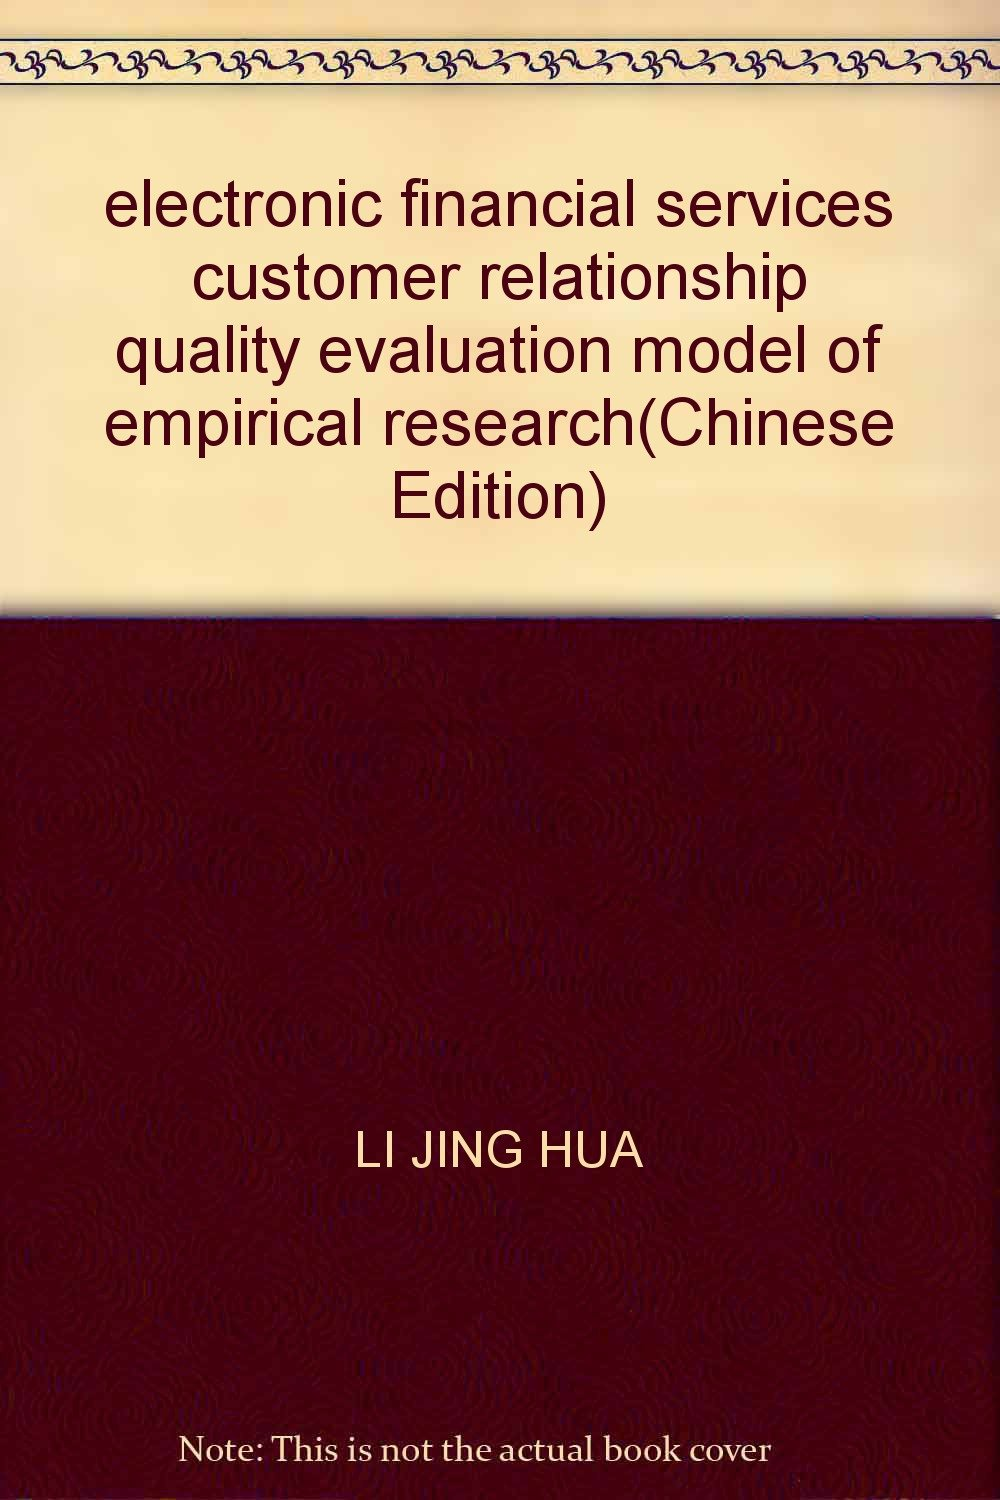 electronic financial services customer relationship quality evaluation model of empirical research(Chinese Edition) ebook